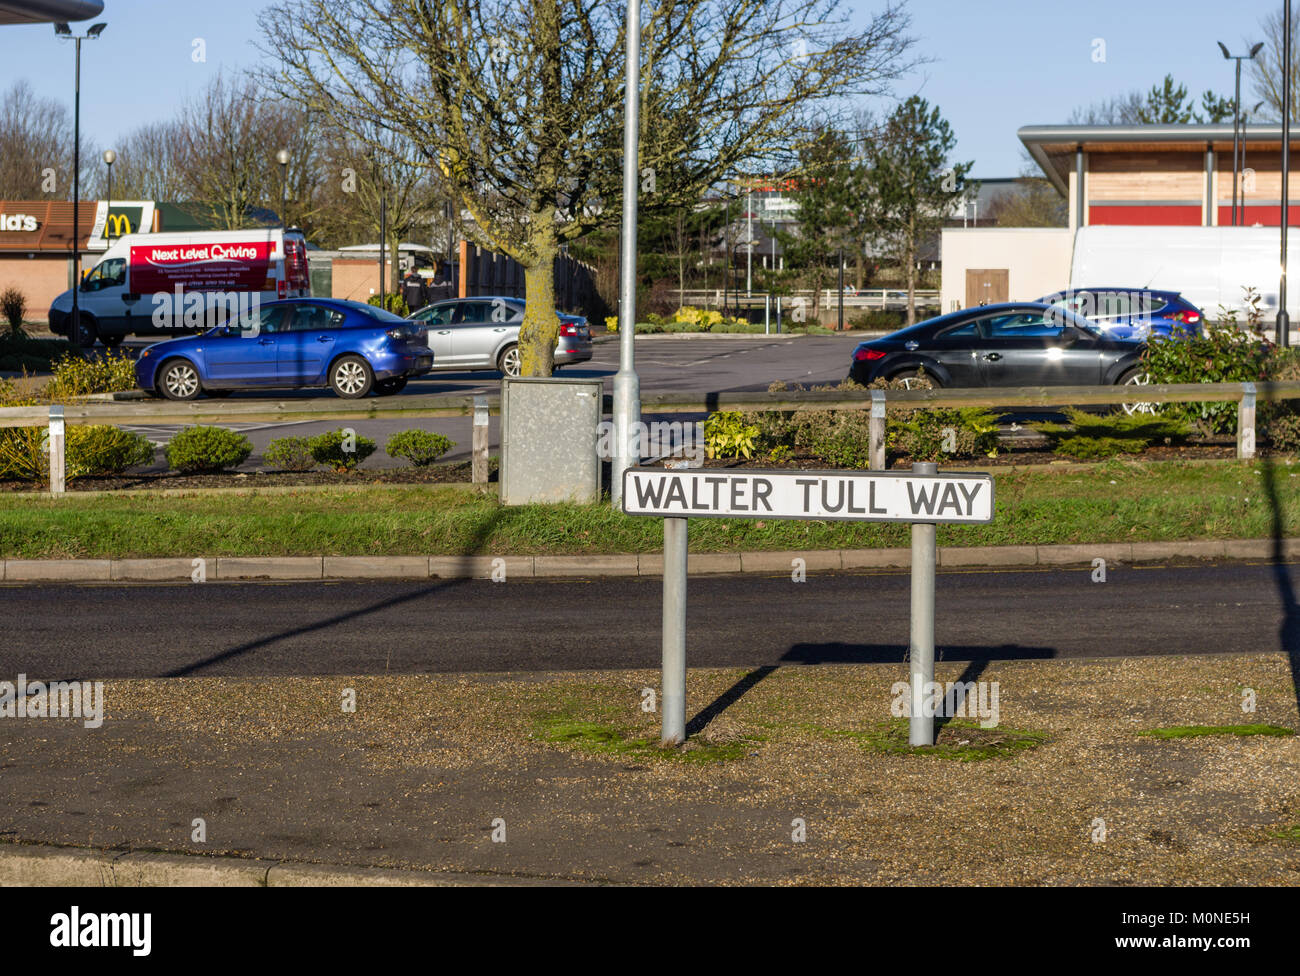 Walter Tull Way, a road sign at Sixfields, Northampton, UK; it honours the man who was a professional footballer - Stock Image